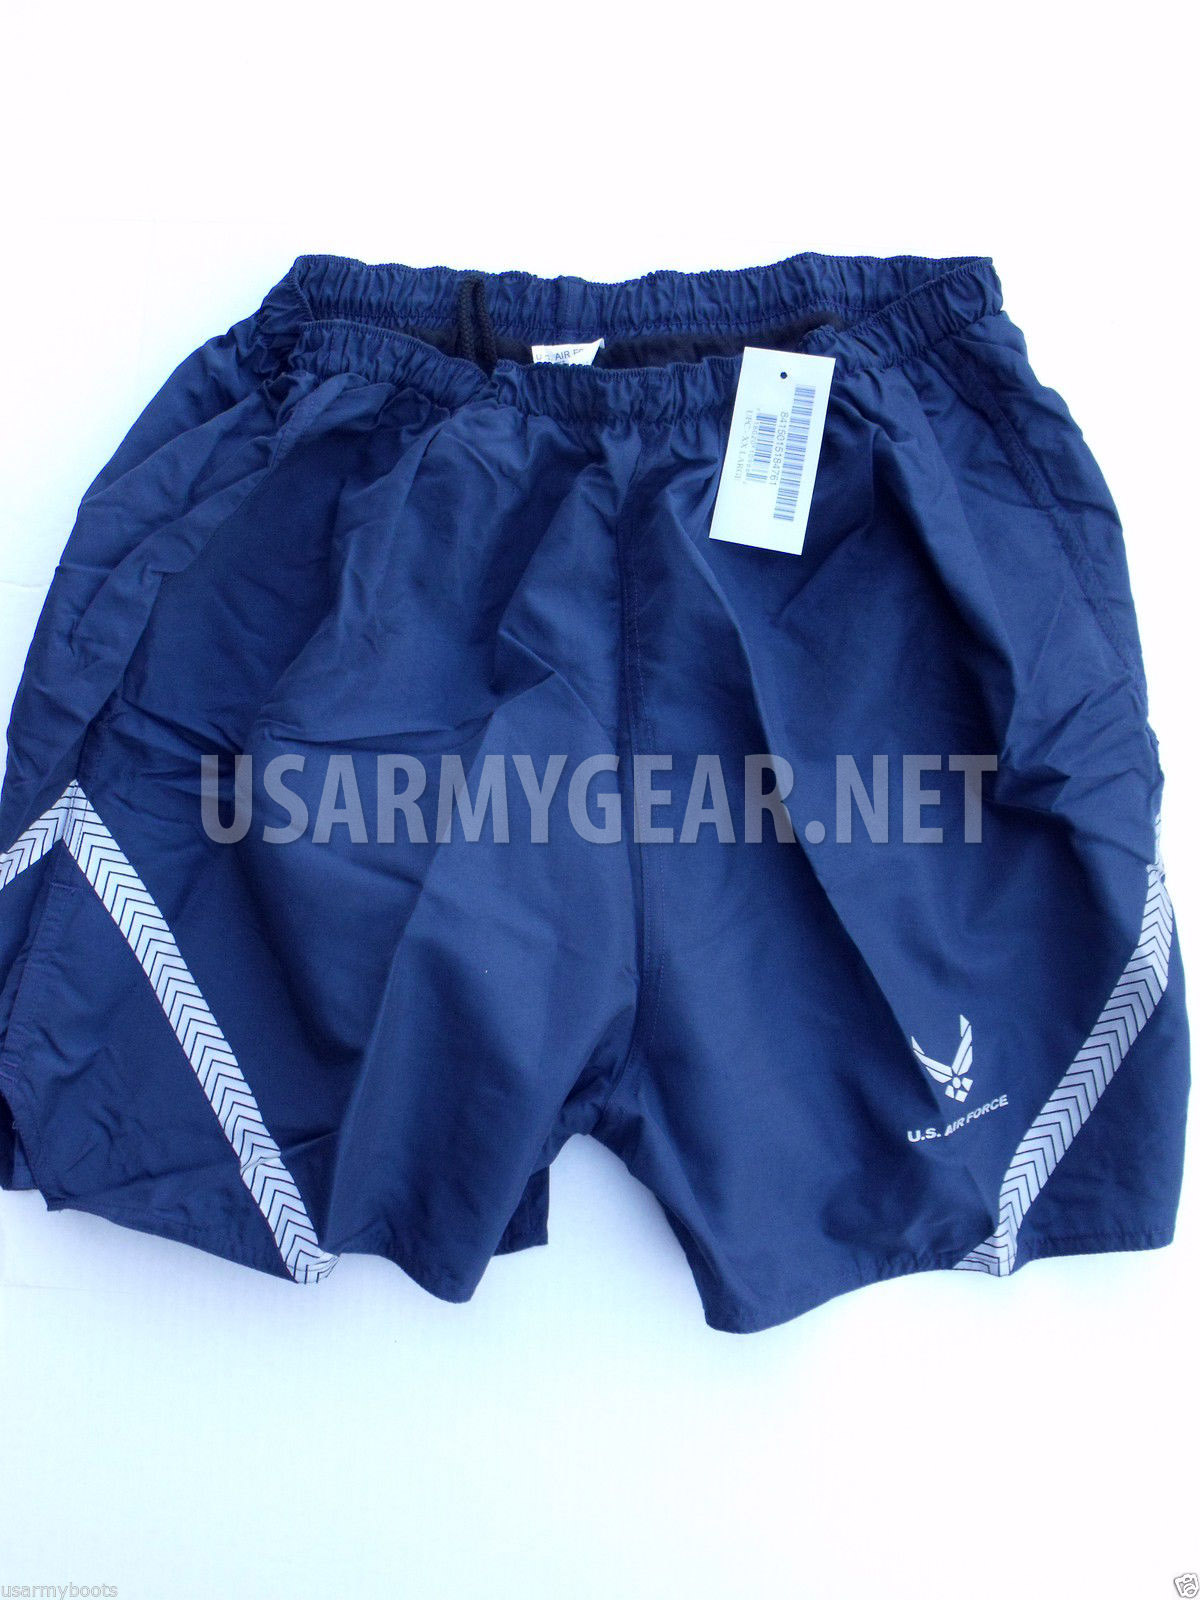 U S Air Force Trunks Physical Training Uniform Shorts